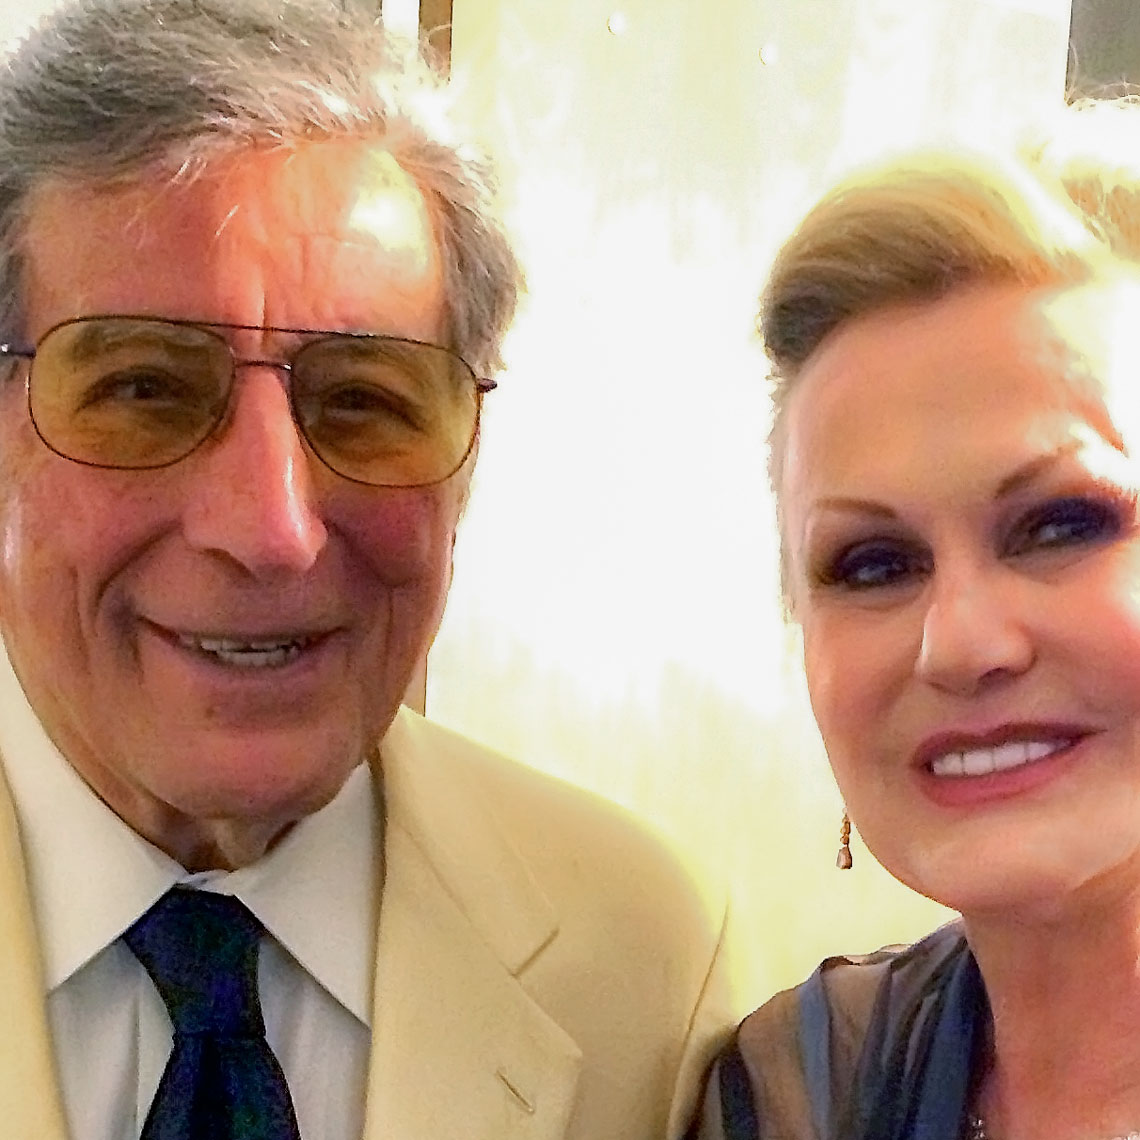 Tony Bennett with Laura Taylor, backstage in Aspen.